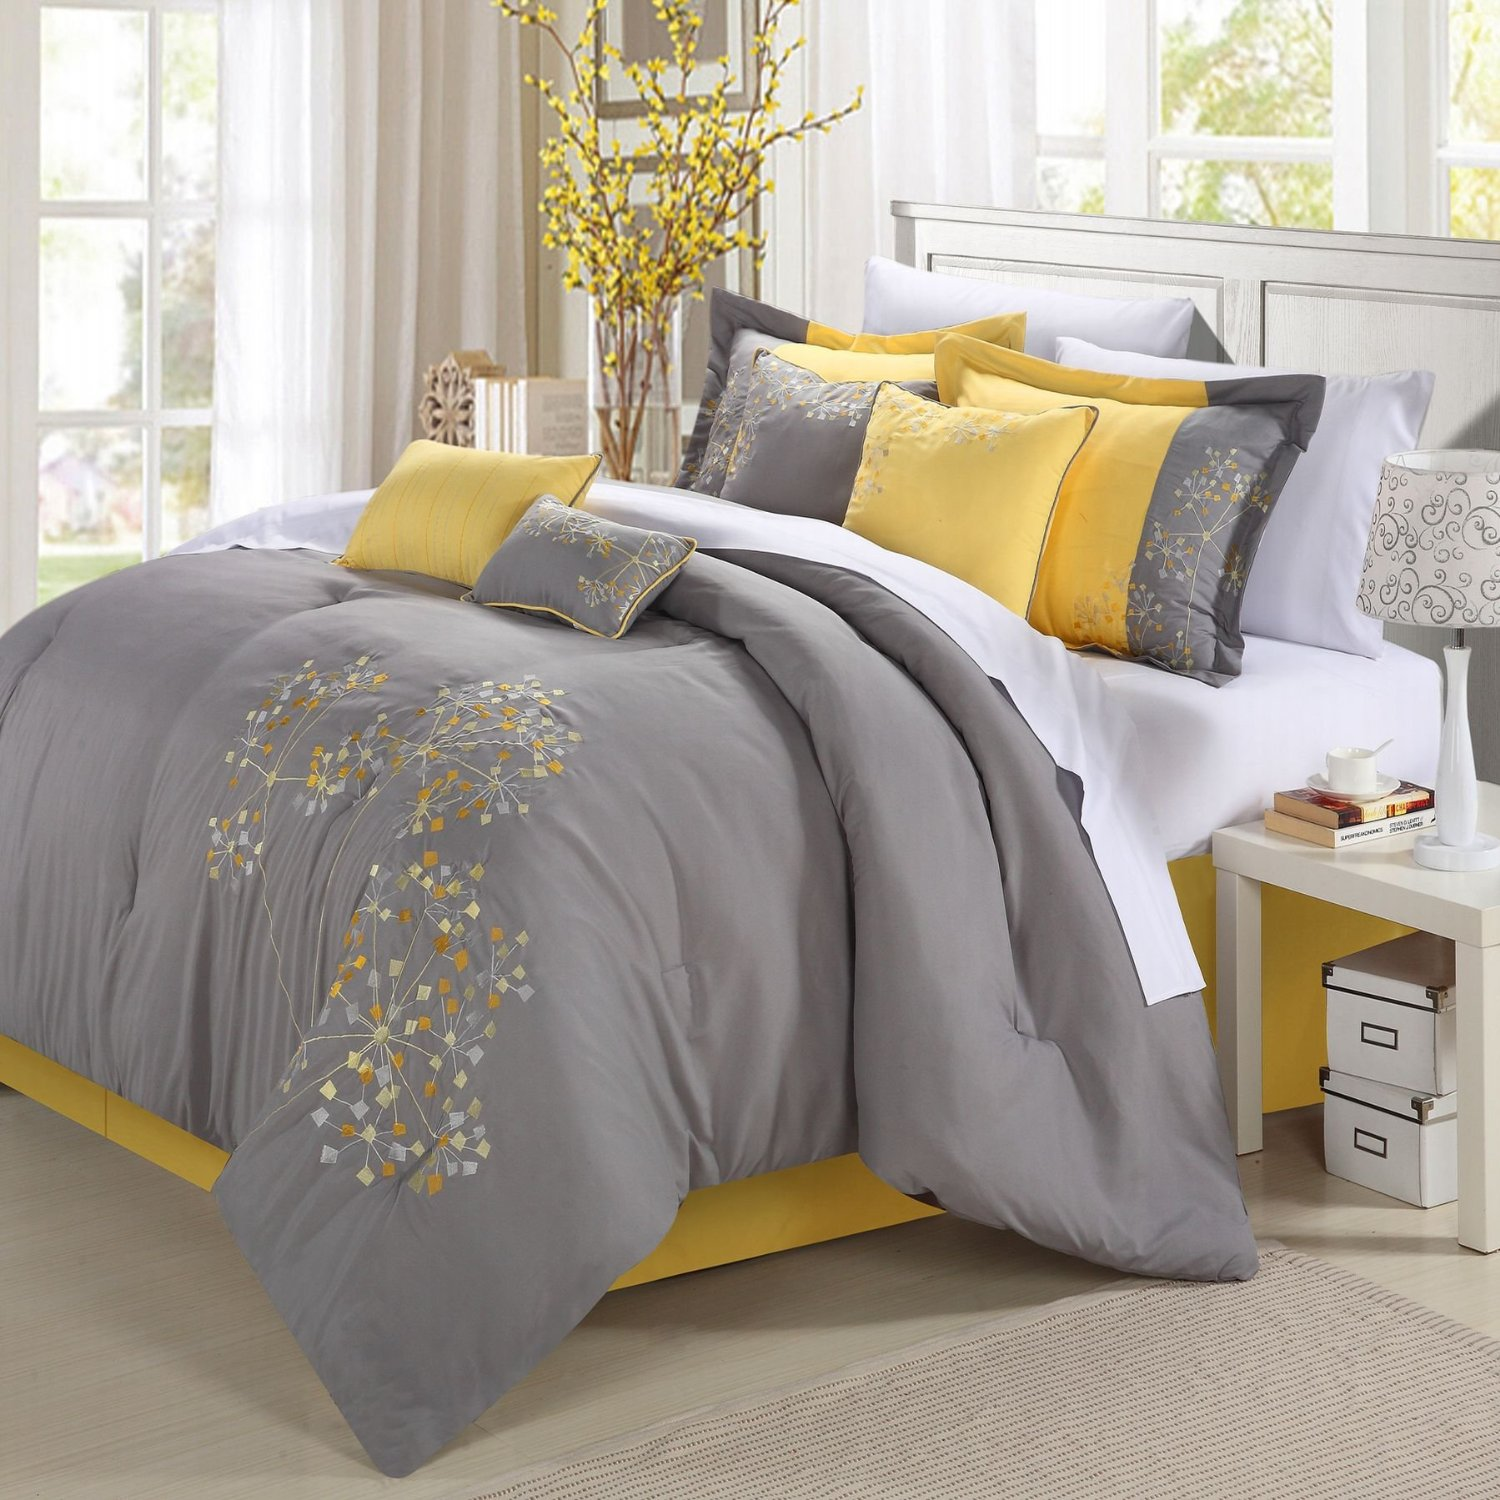 unthinkable gray decor and bedroom ideas yellow room